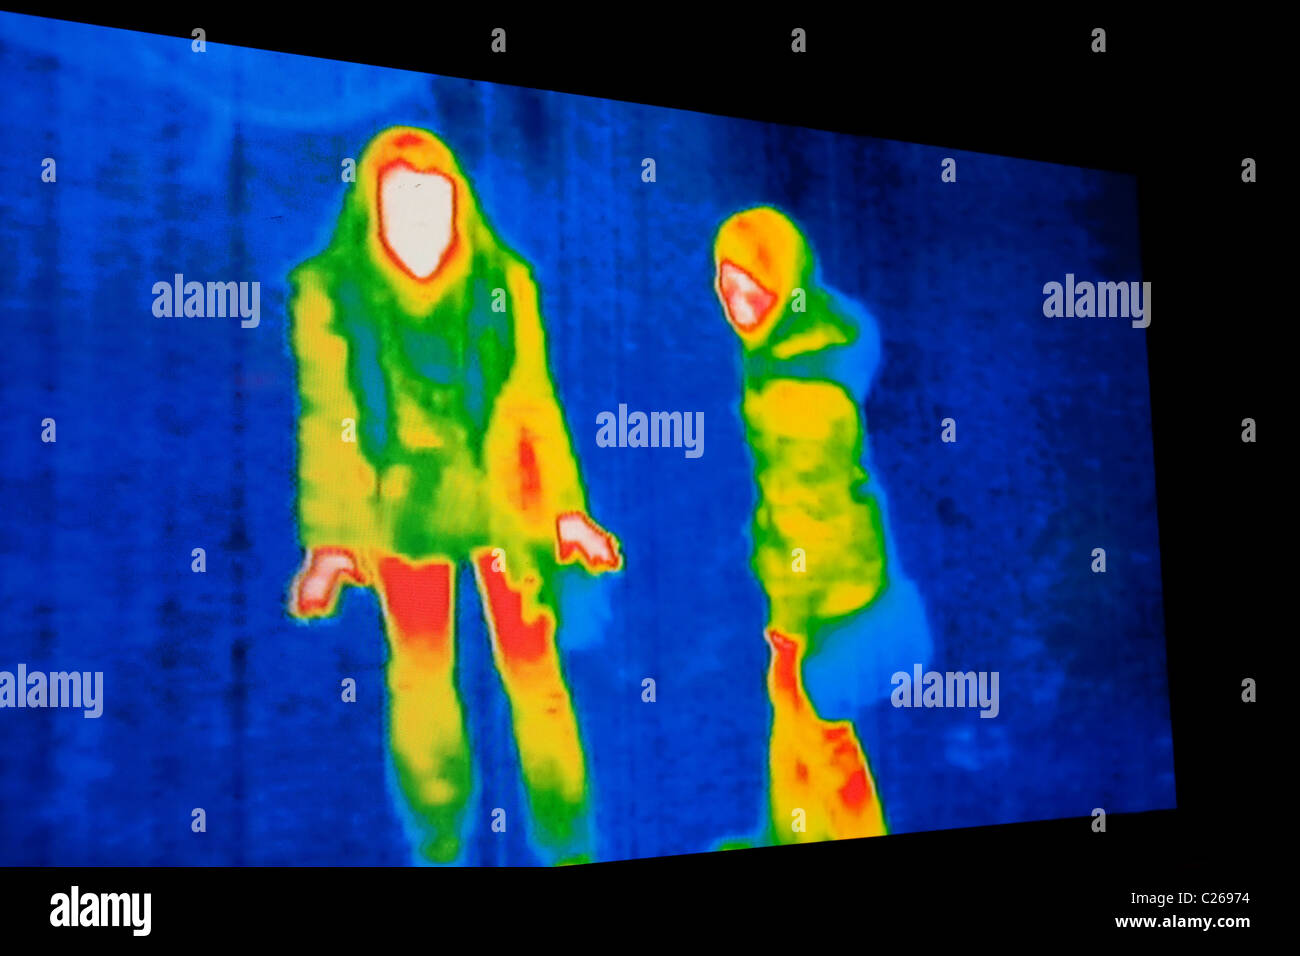 photo of thermal image screen for background - Stock Image